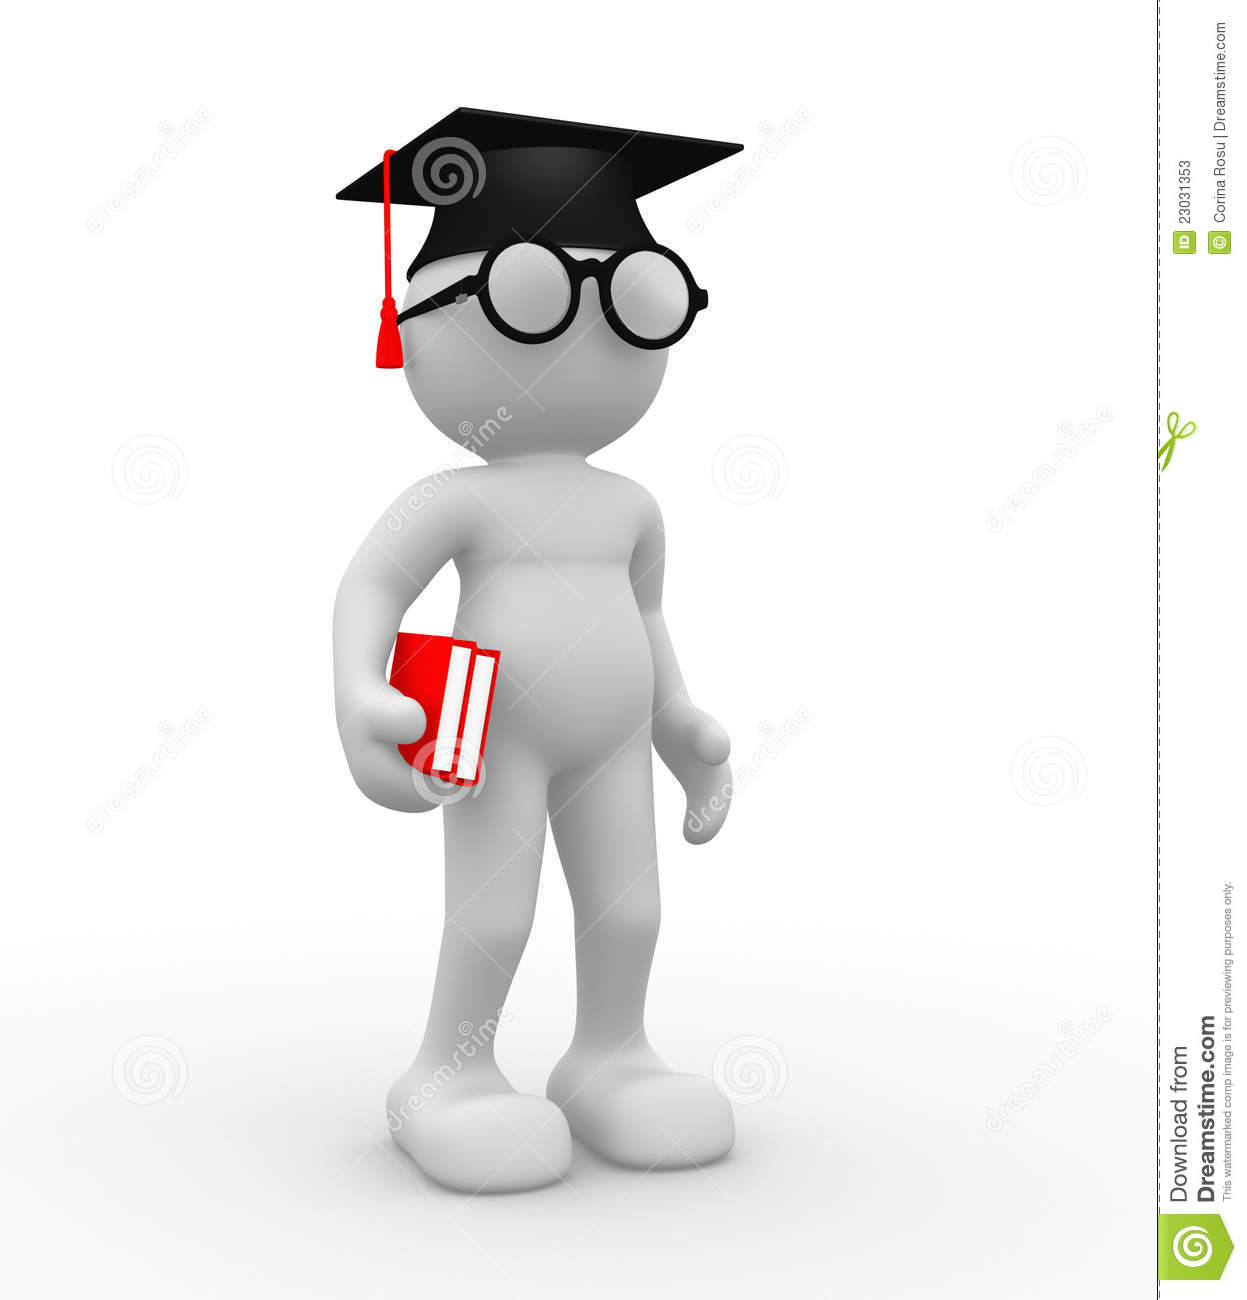 Graduation Stock Photos  Image: 23031353